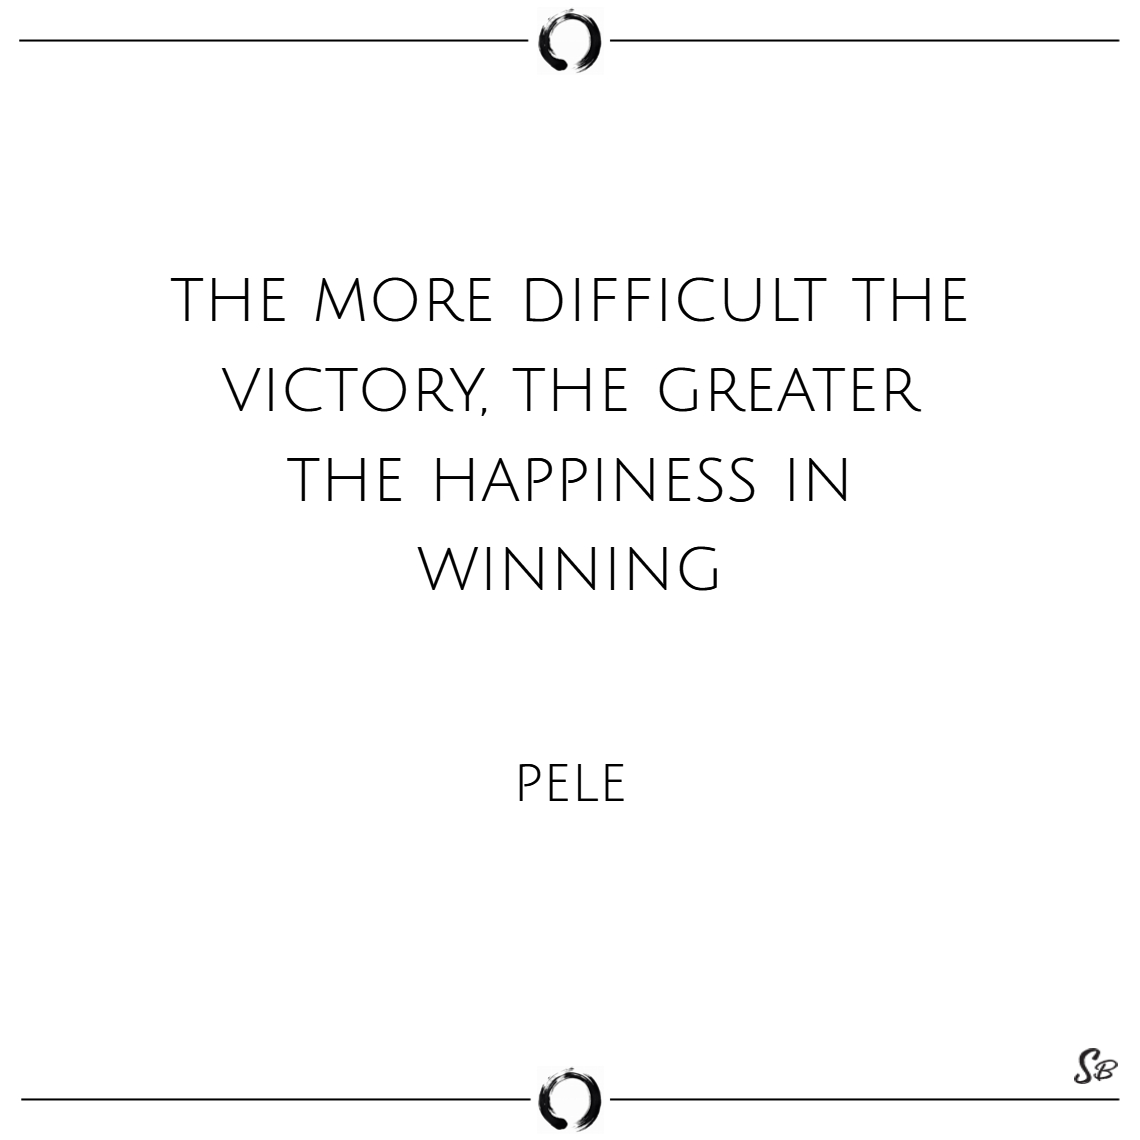 The more difficult the victory, the greater the ha